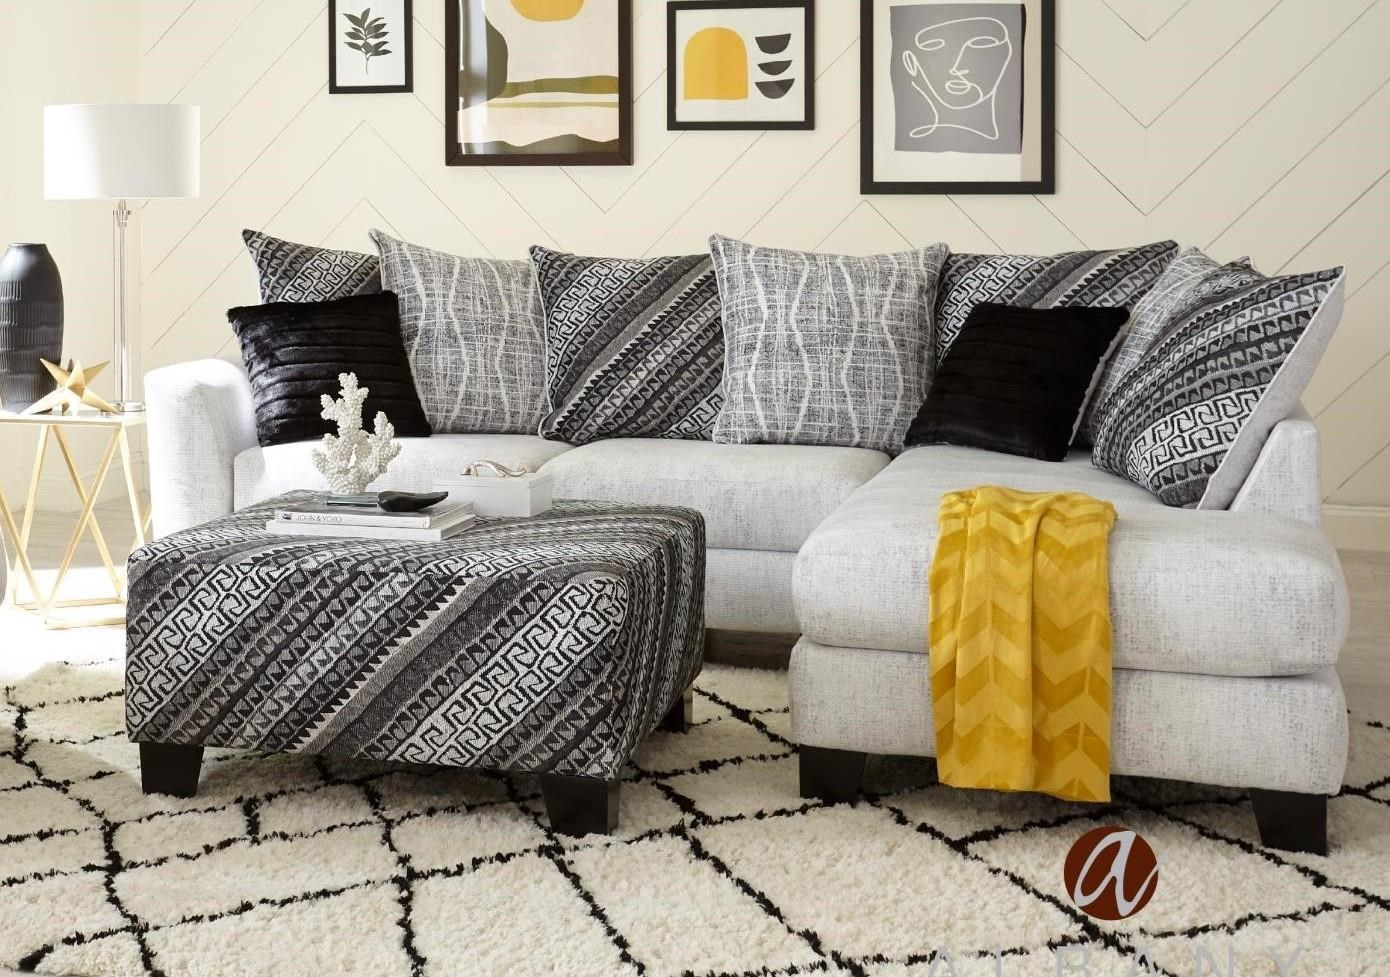 370 Berber Cream TWO PIECE SECTIONAL by Albany at Furniture Fair - North Carolina